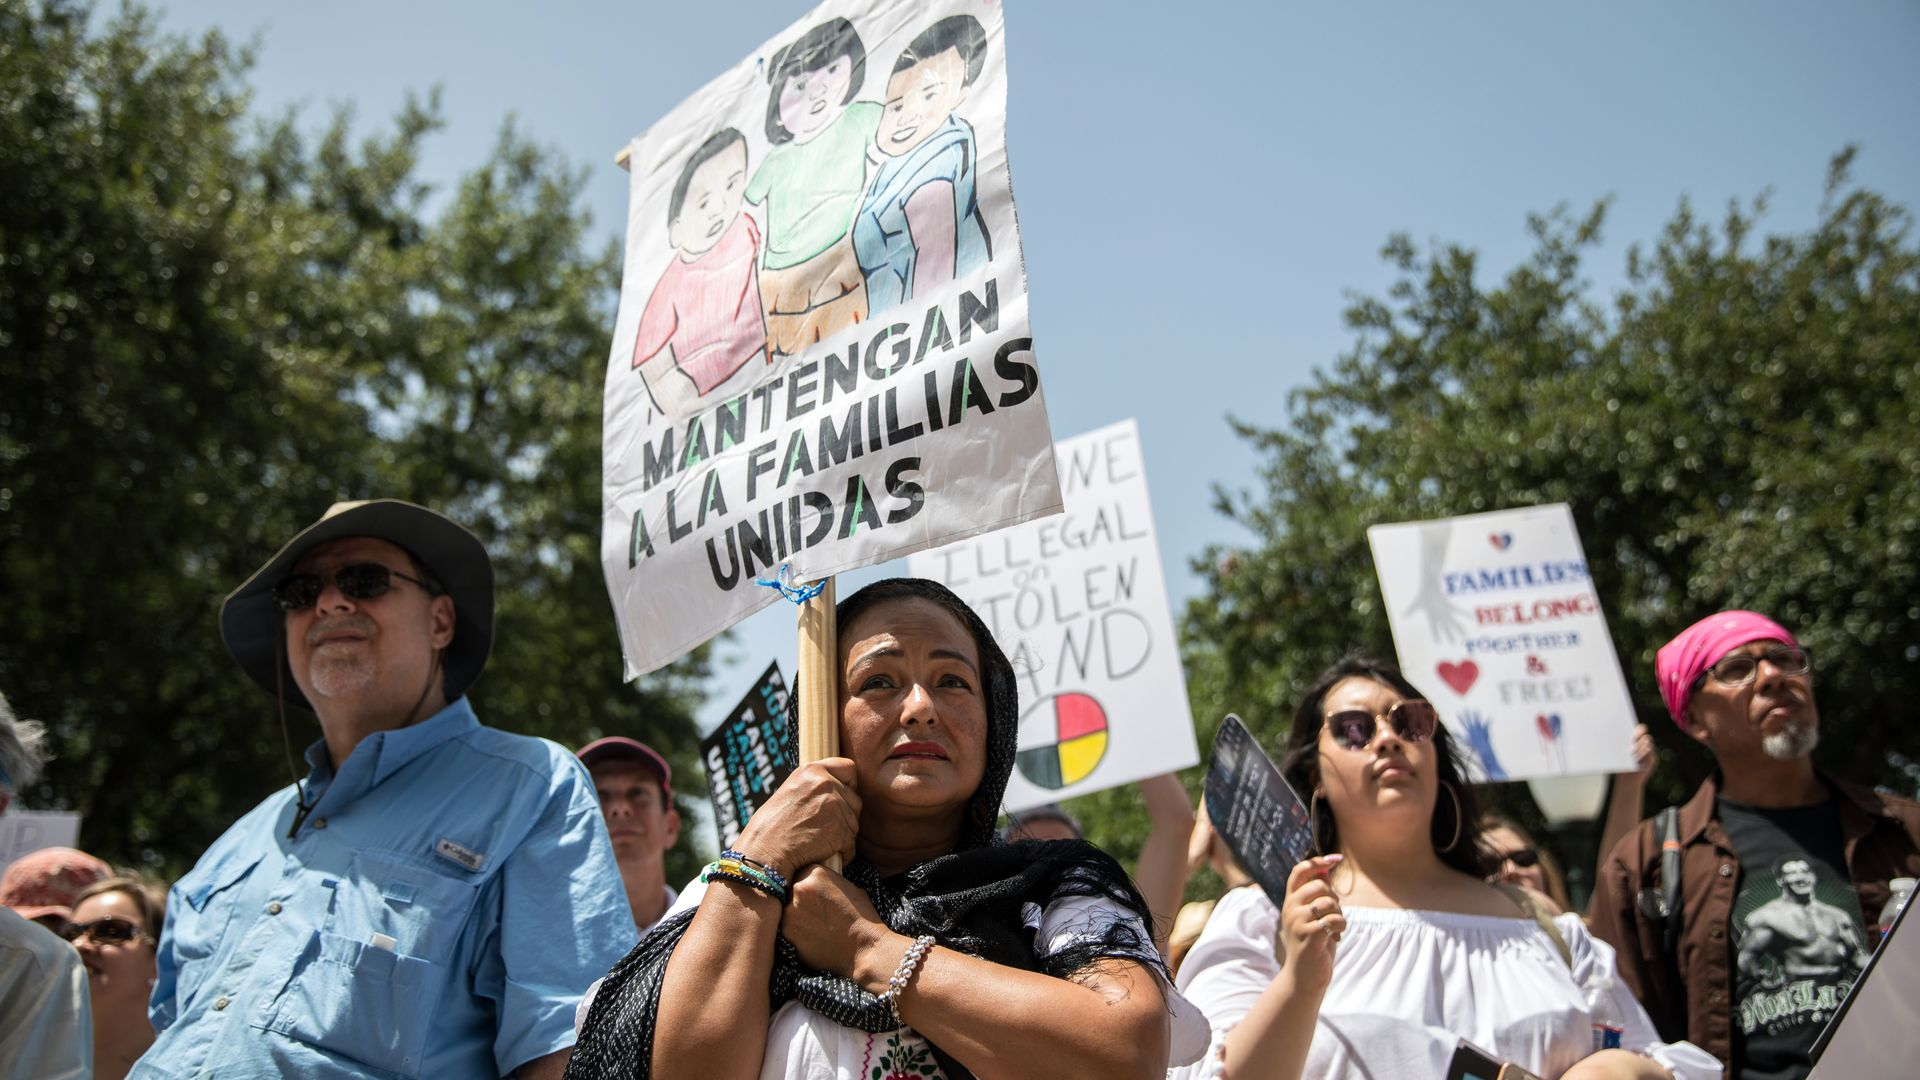 Demonstrators at a rally last year in Texas against the Trump administration's immigration policies.